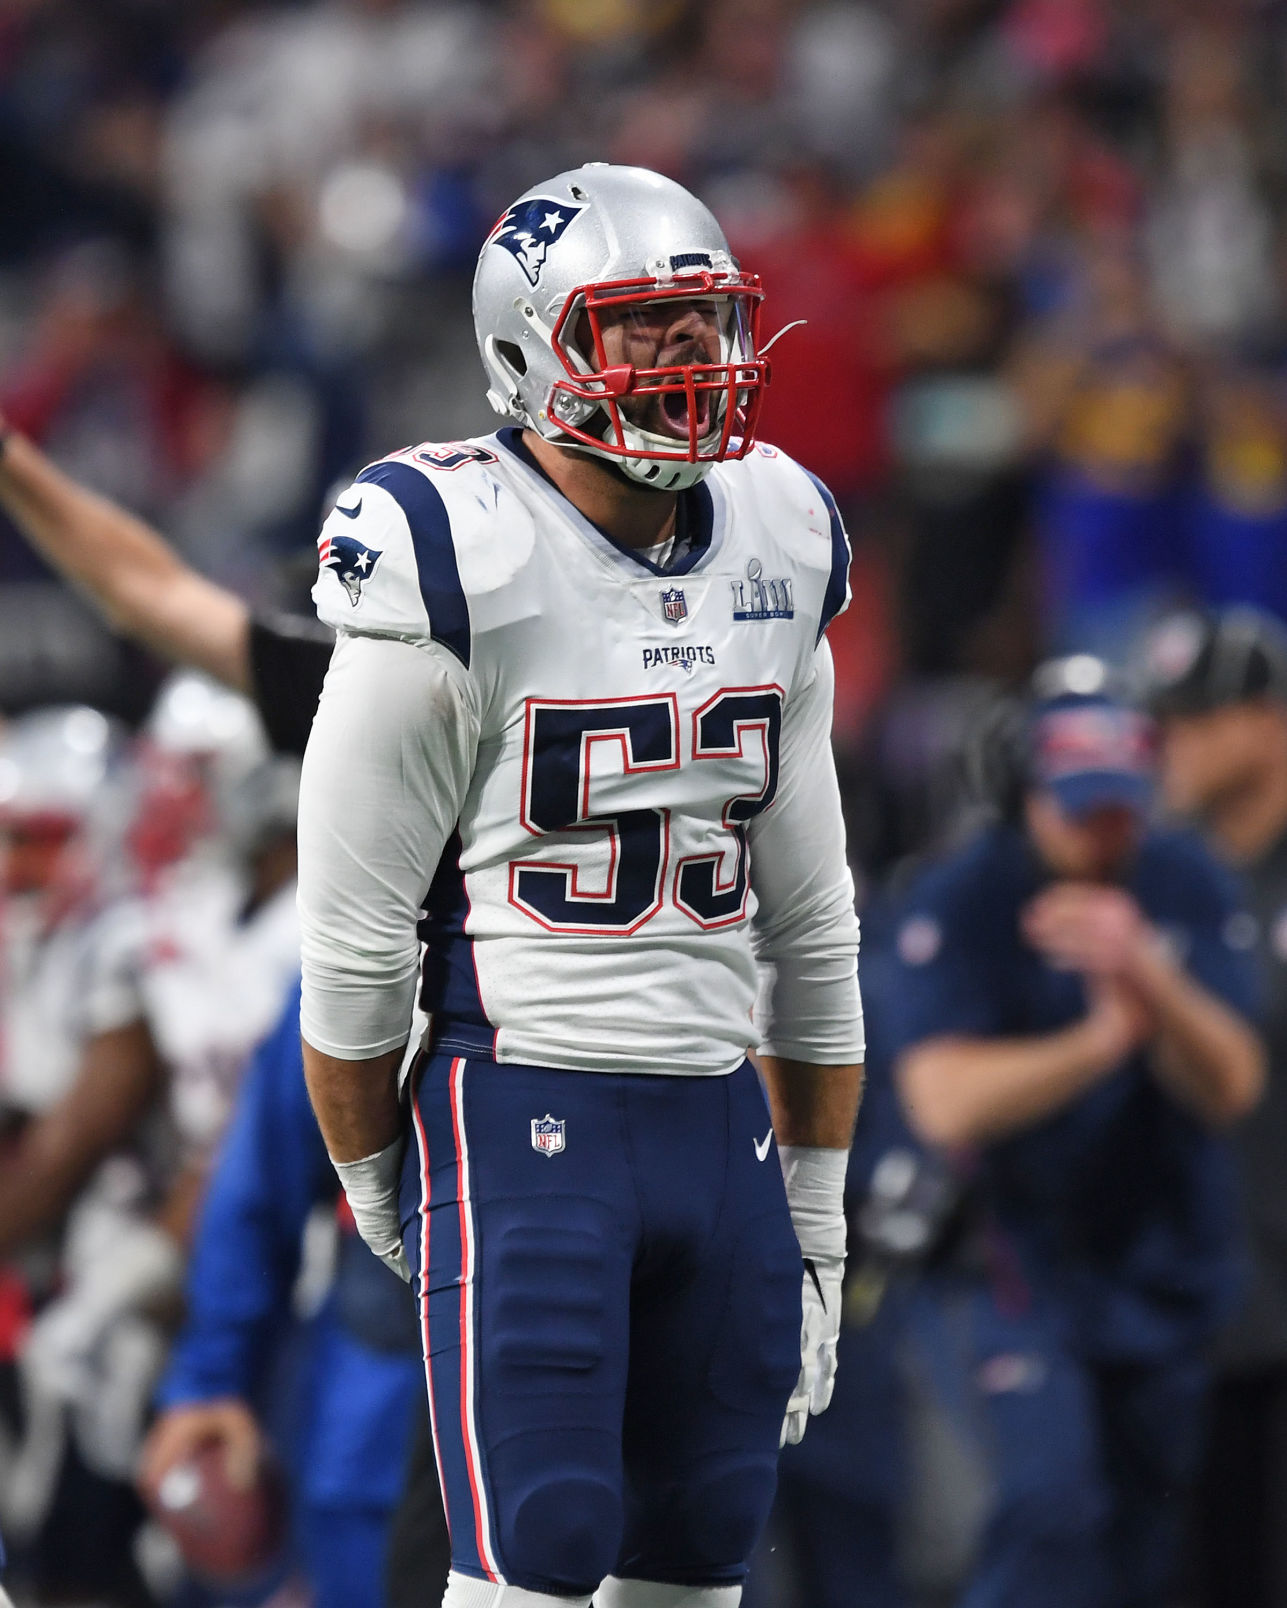 More honors for Van Noy; Noted by NFLPA for helping foster ...